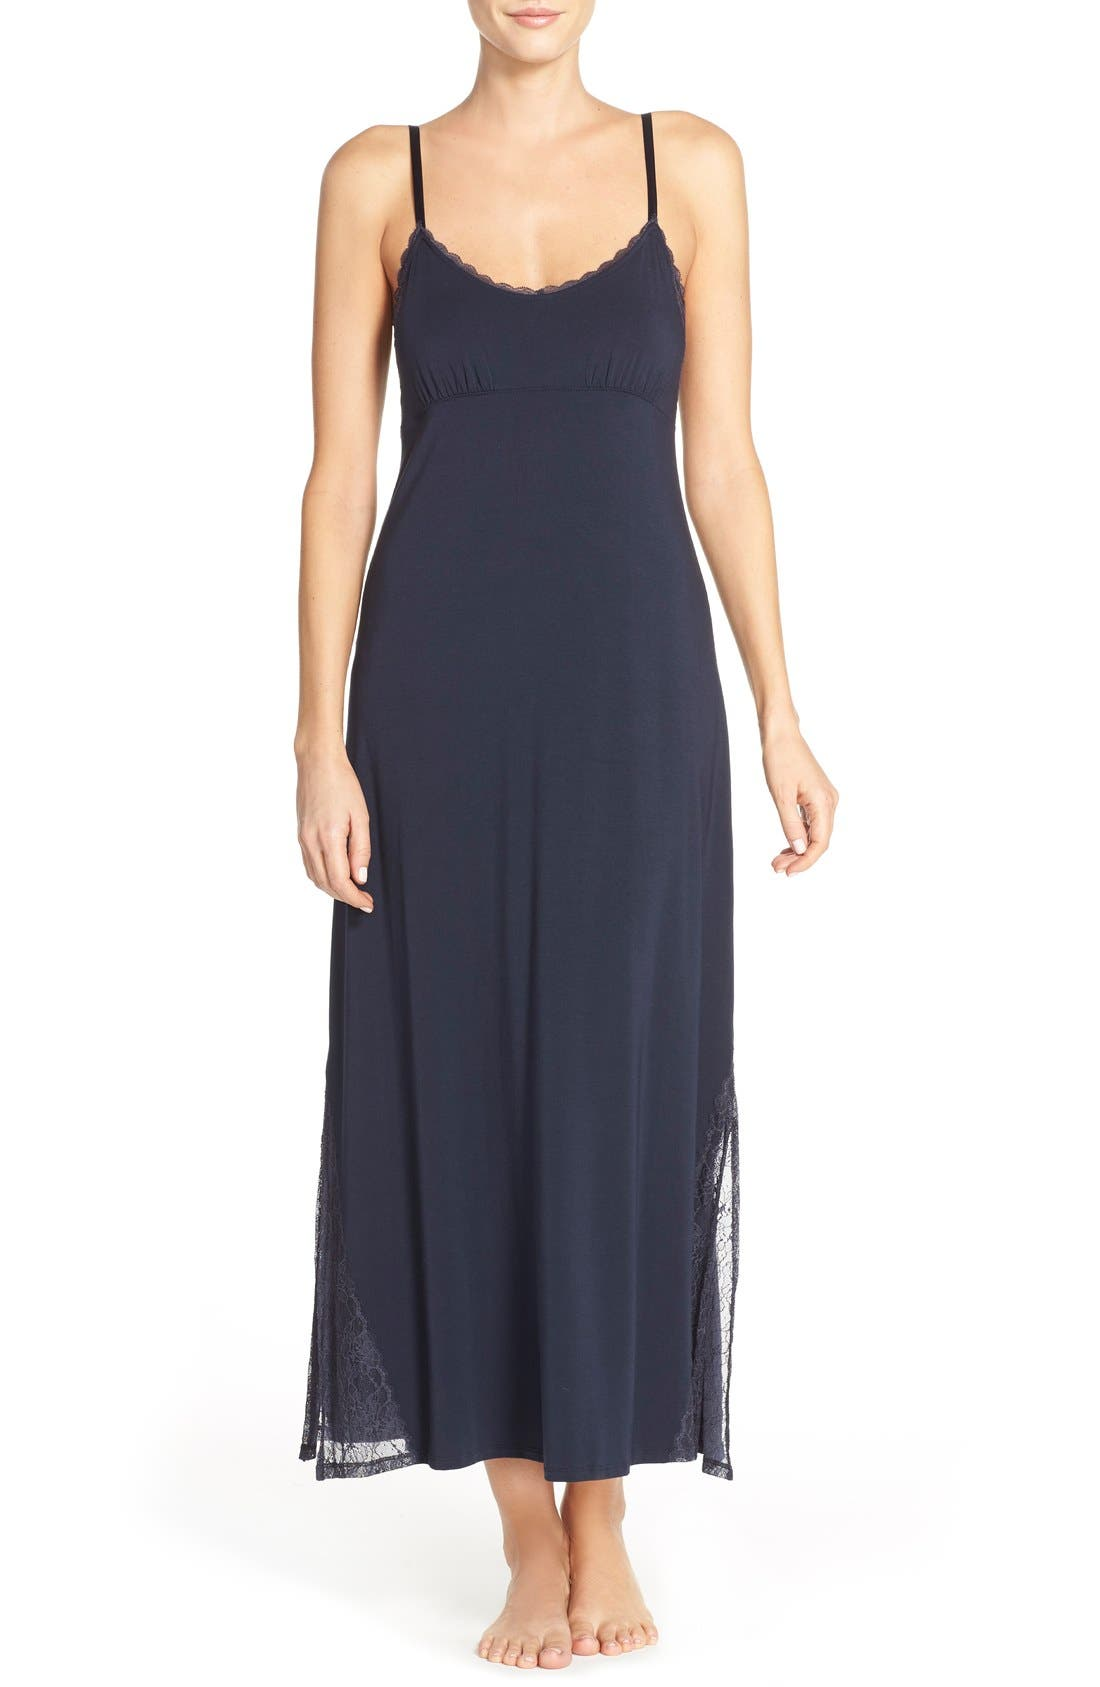 Alternate Image 1 Selected - Midnight by Carole Hochman Stretch Modal Nightgown